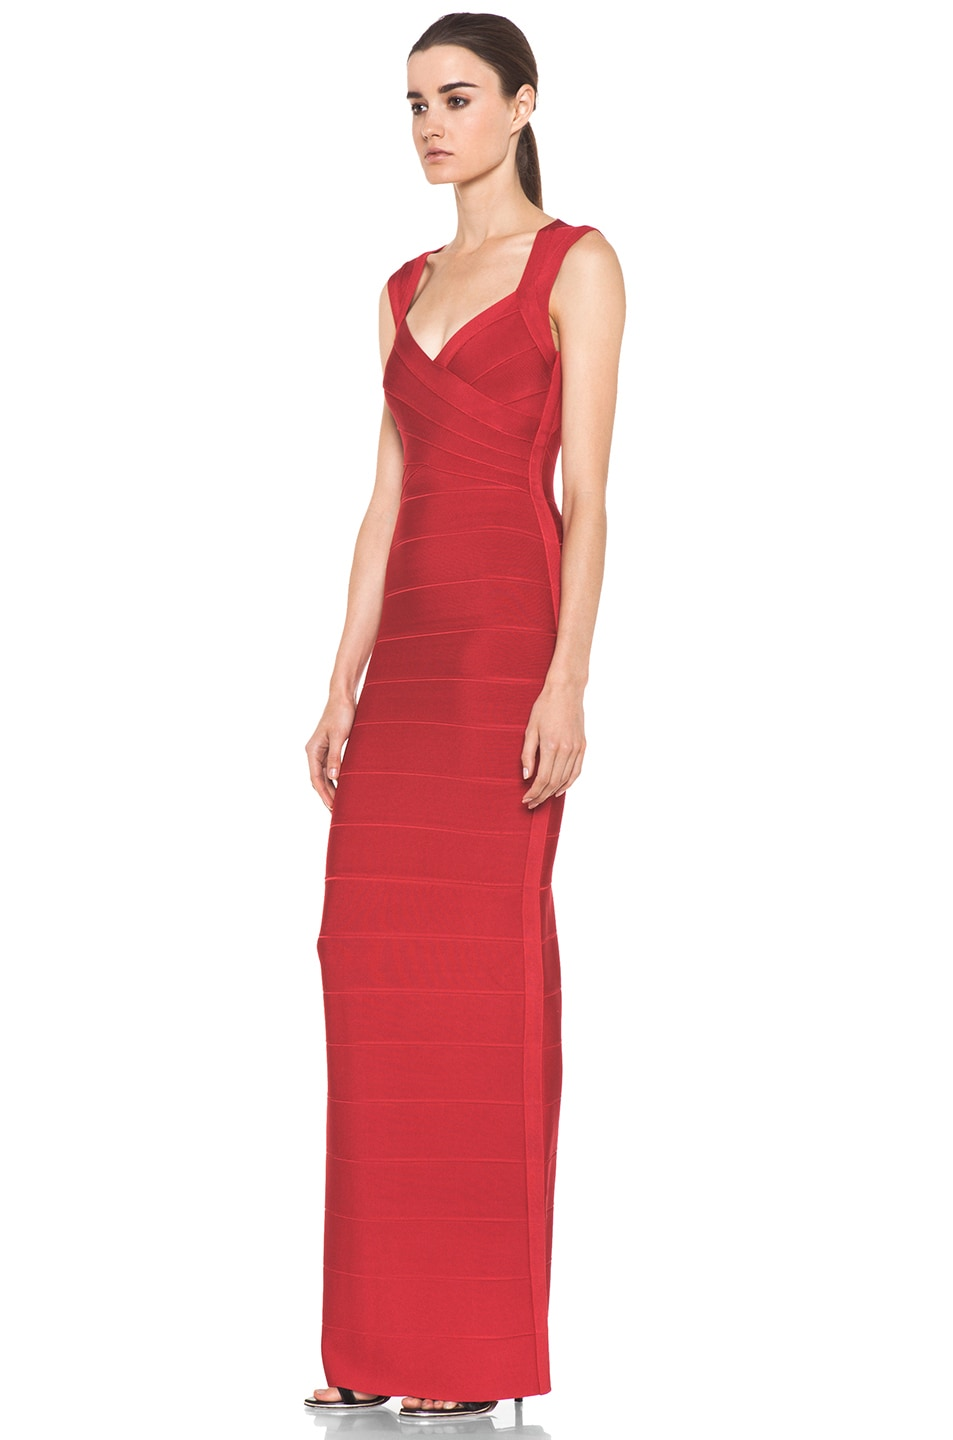 Herve Leger Gown in Red   FWRD